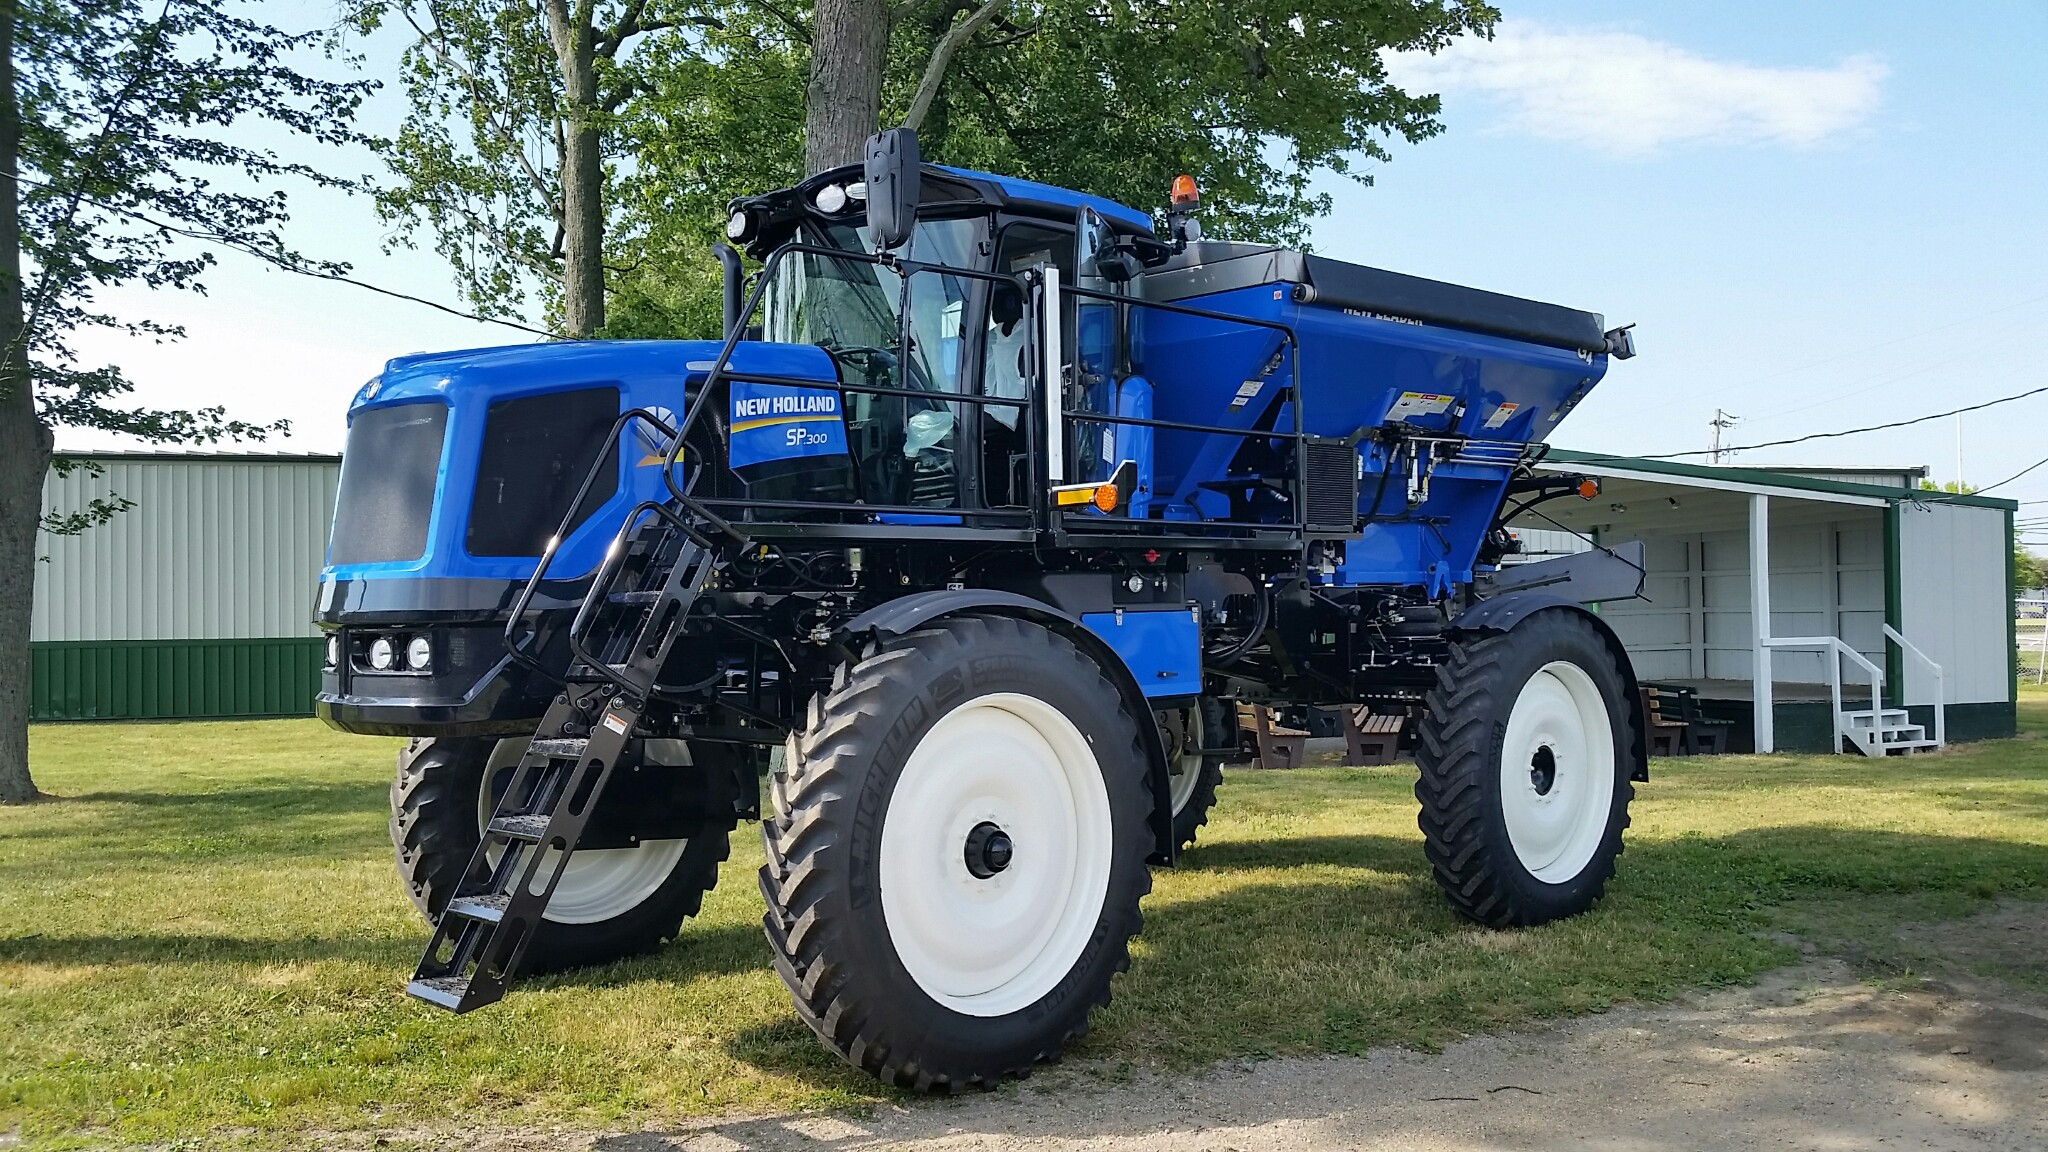 Boom Sprayers For Tractors : New holland launches guardian my series rear boom